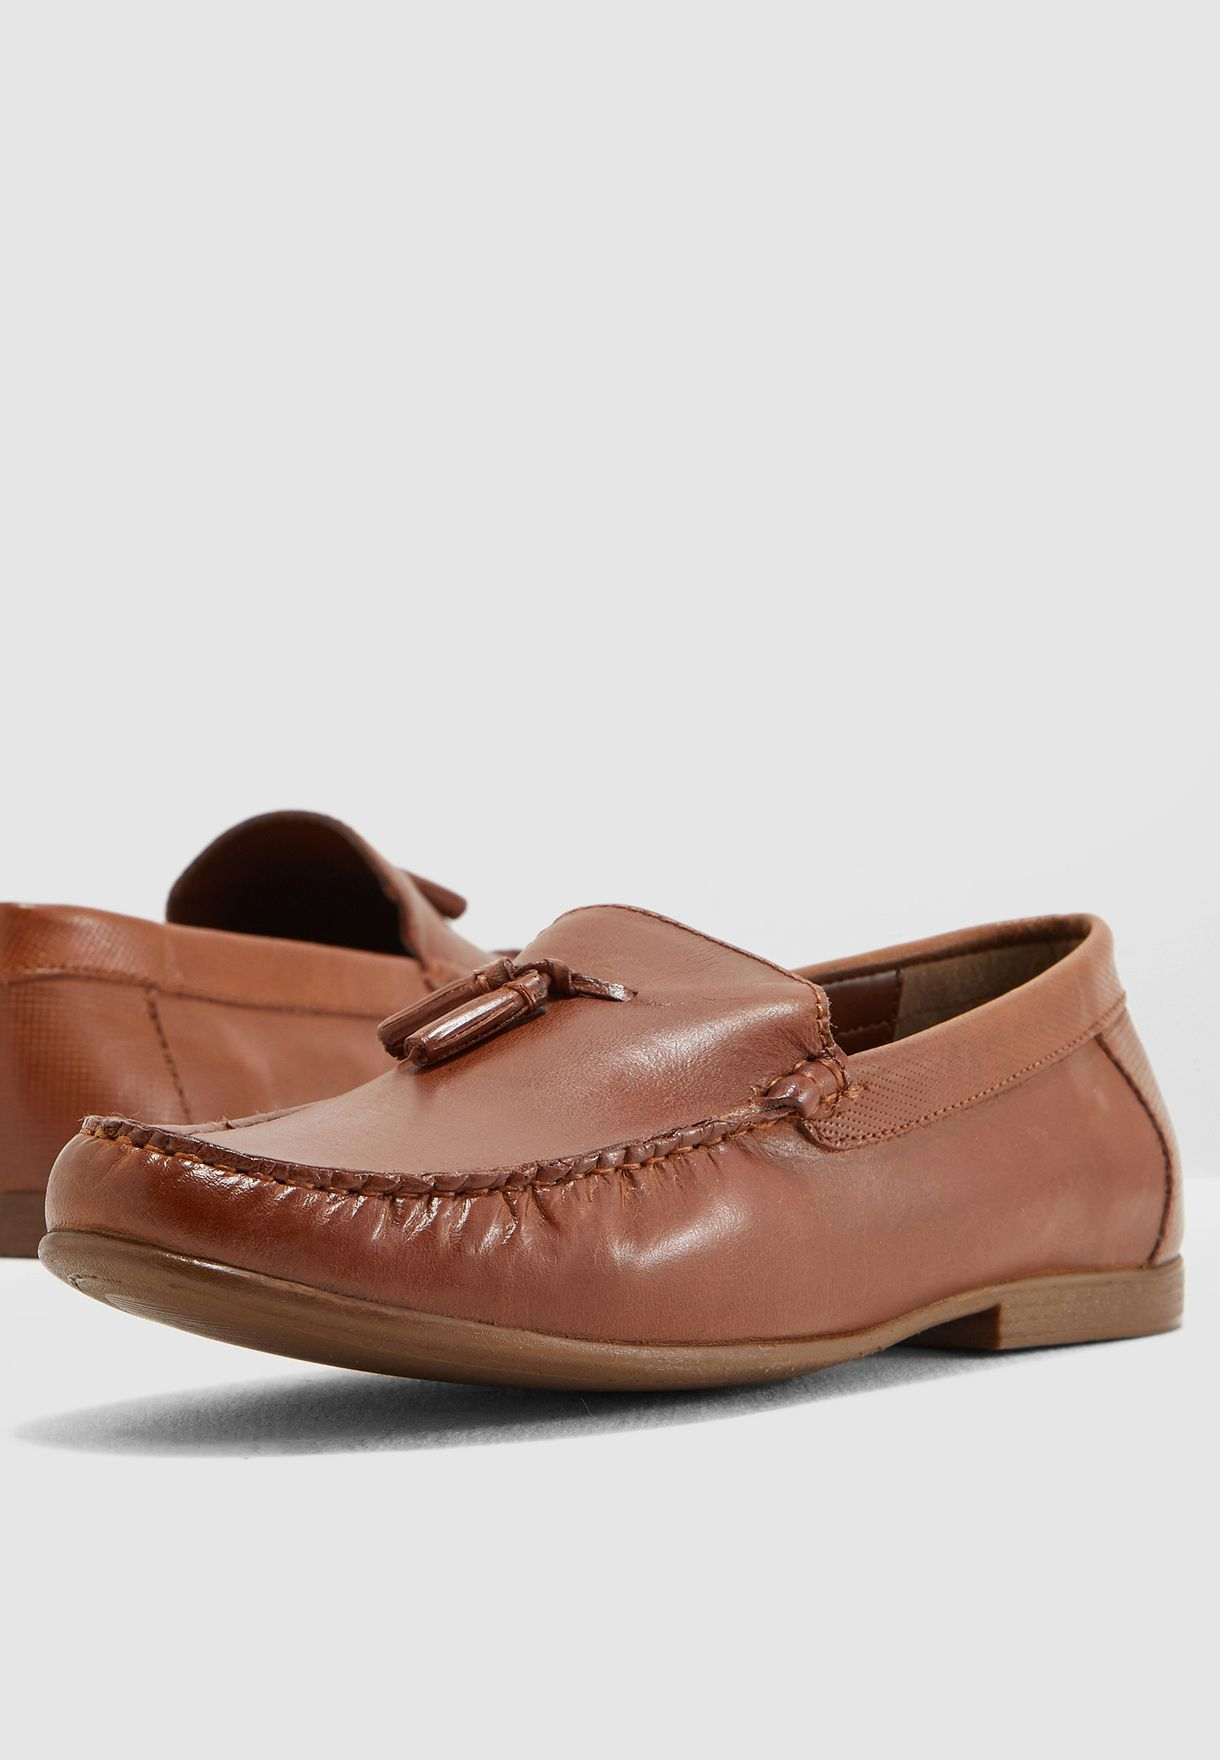 3b6b55c8261 Shop Topman Brown Tassel Loafers 76Q82NTAN for Men in Bahrain - 18832SH96QKP